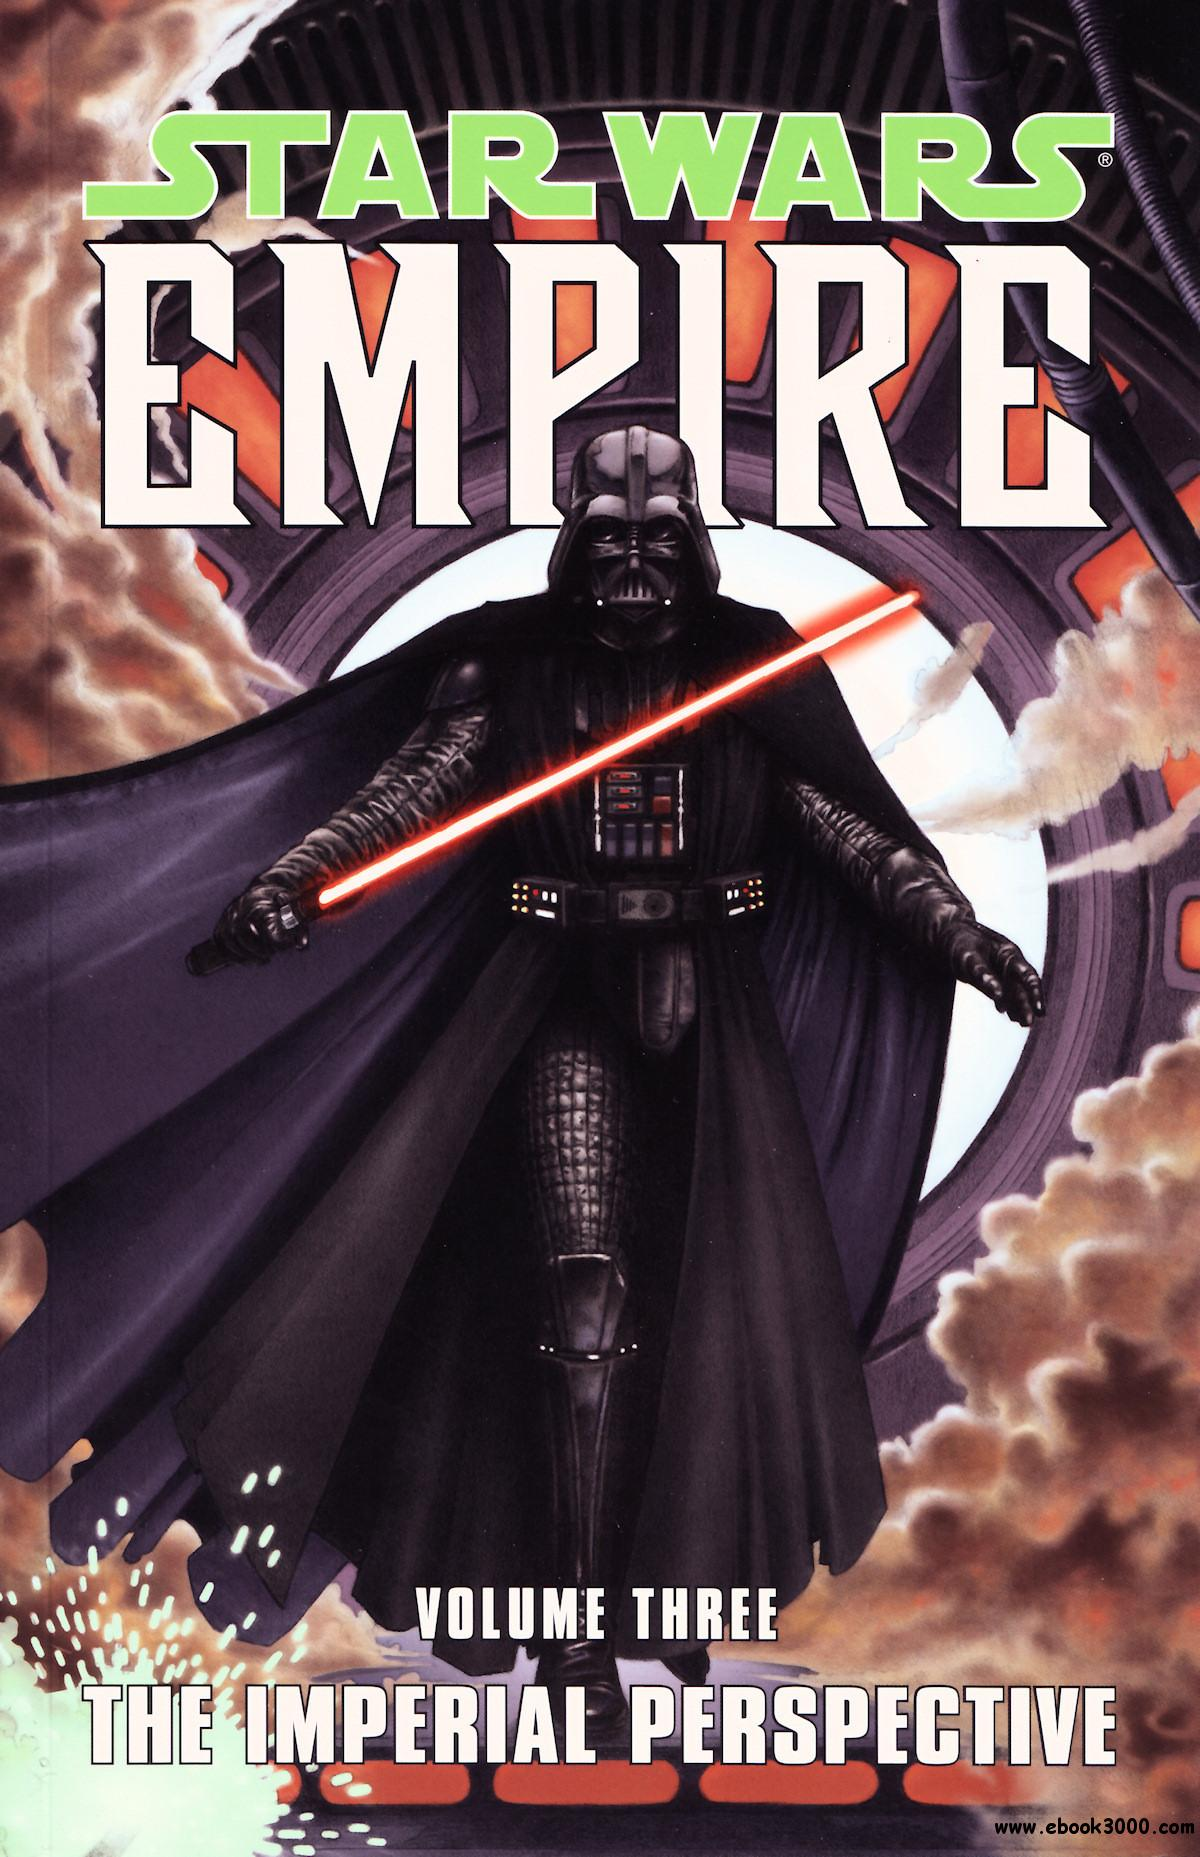 Star Wars - Empire Vol. 3 - The Imperial Perspective [TPB] (2004) free download